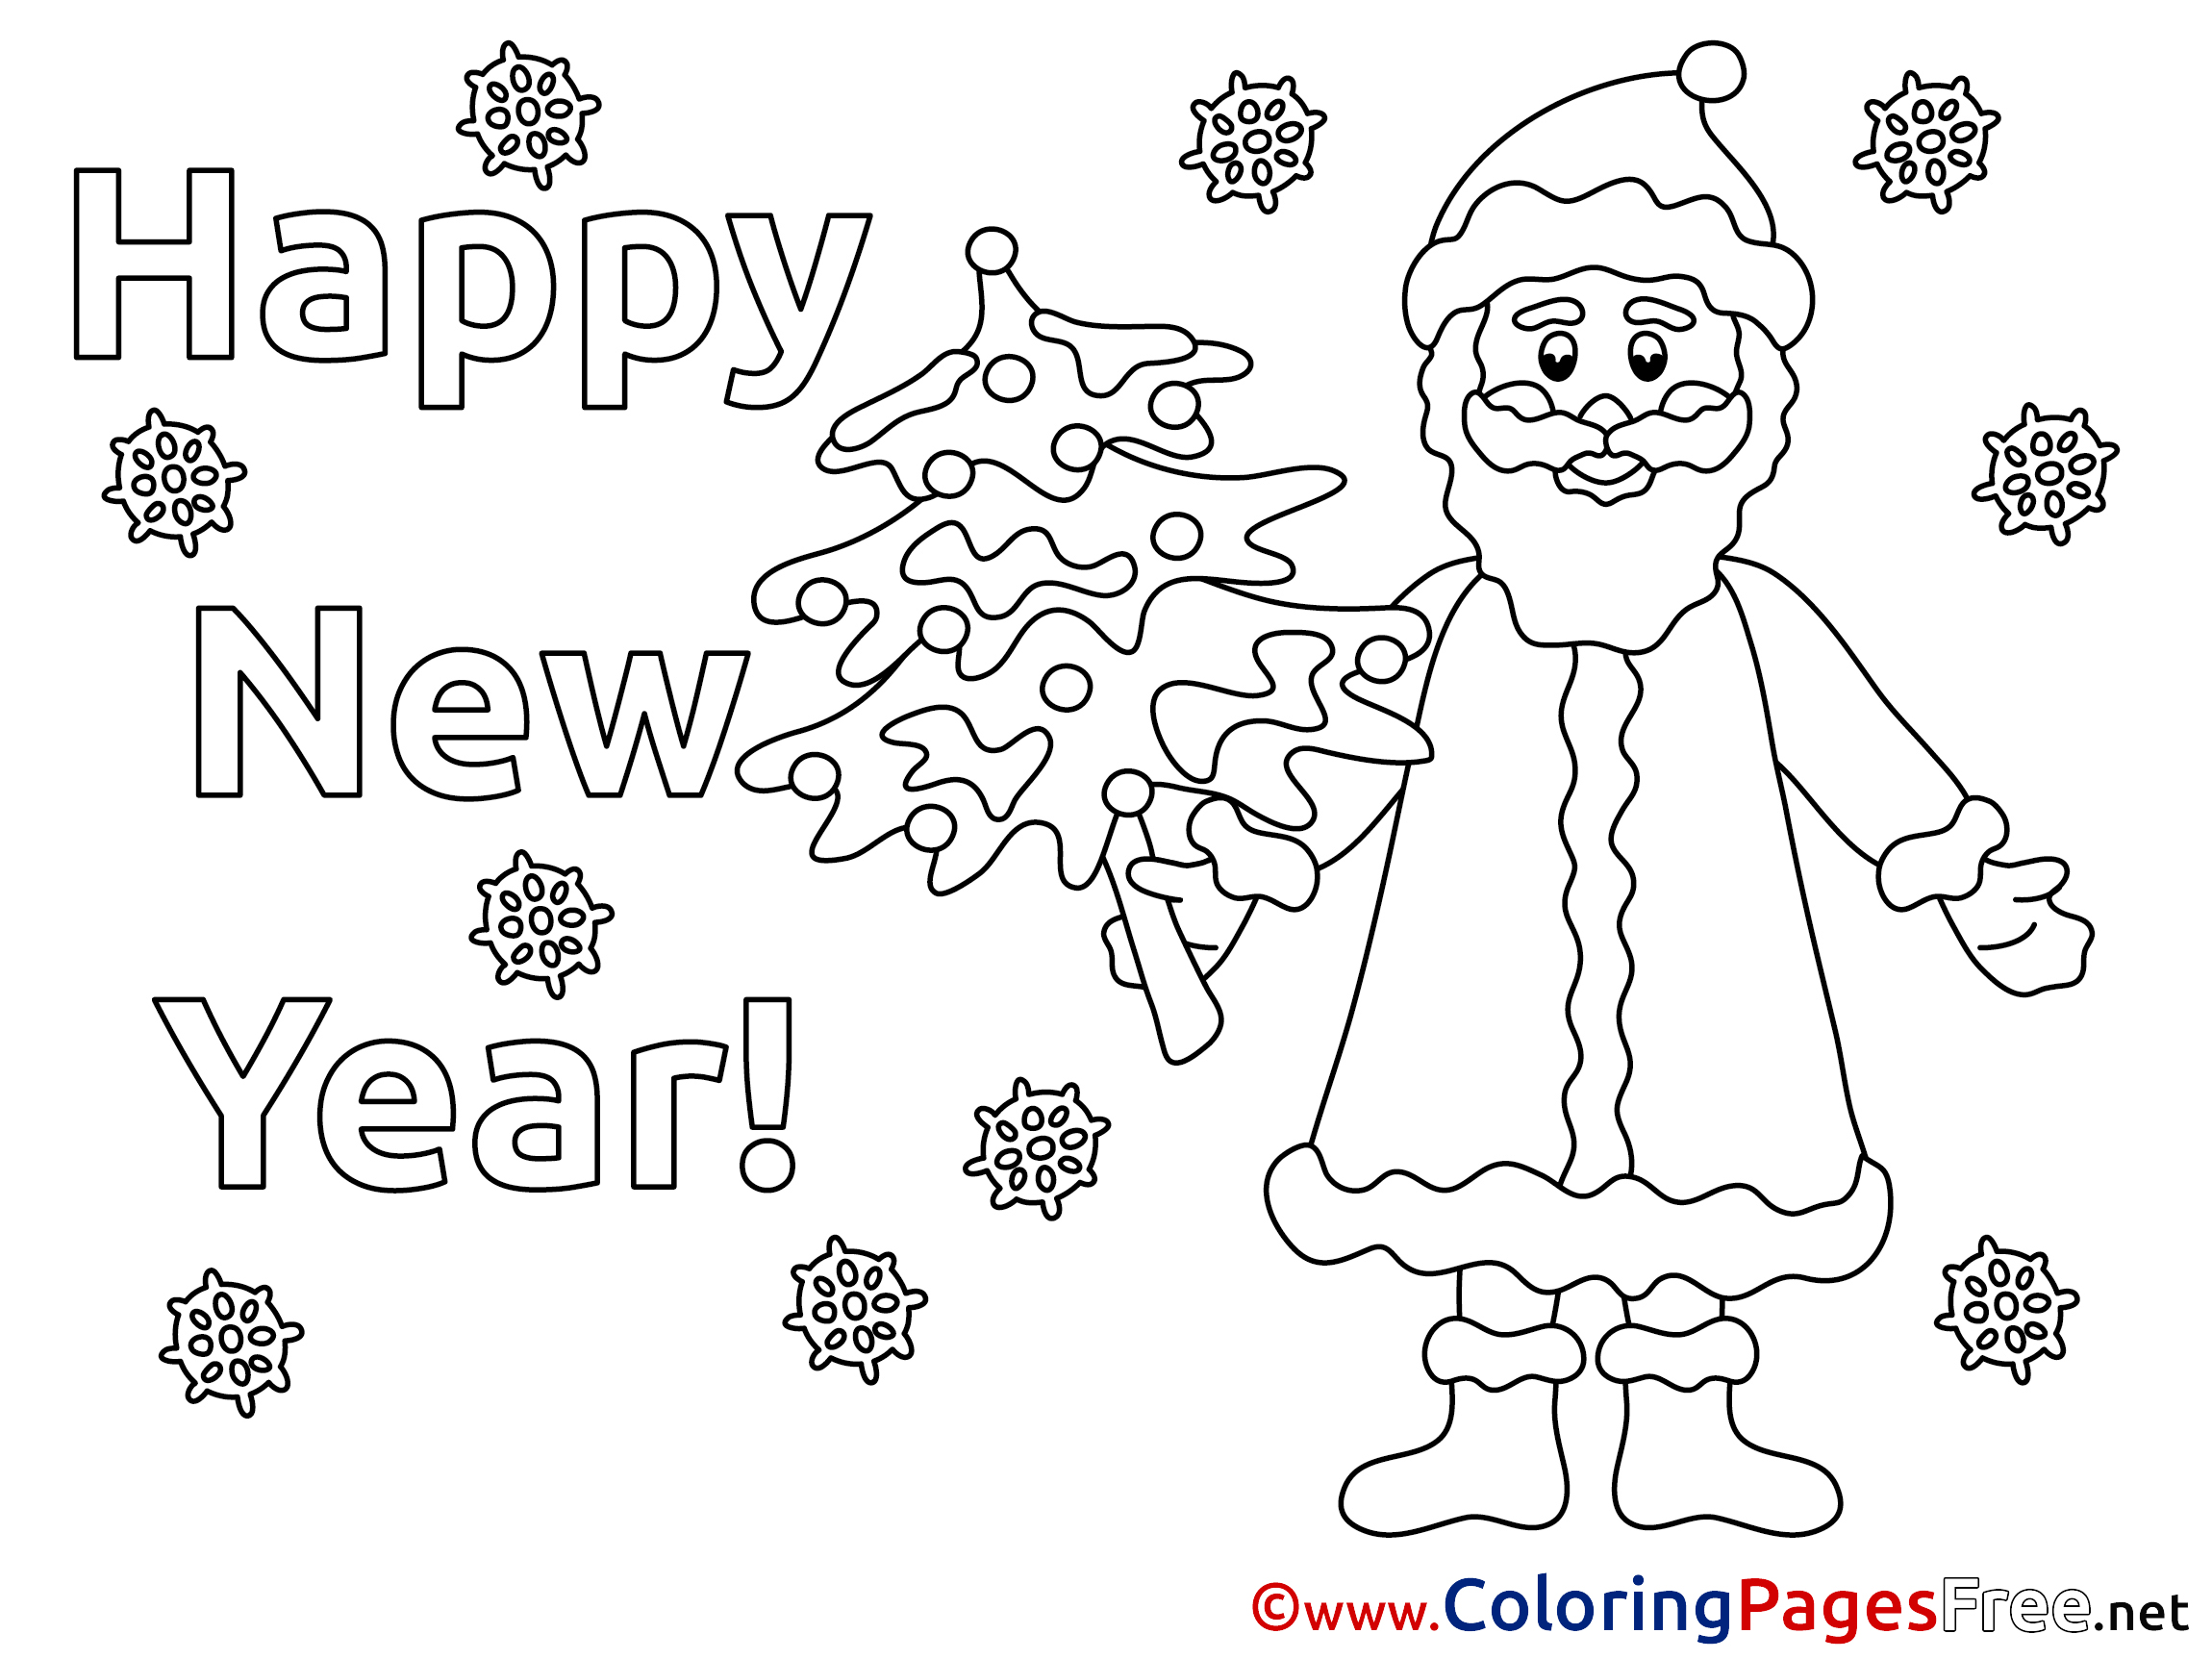 santa claus coloring pages for preschoolers - children santa claus new year colouring page